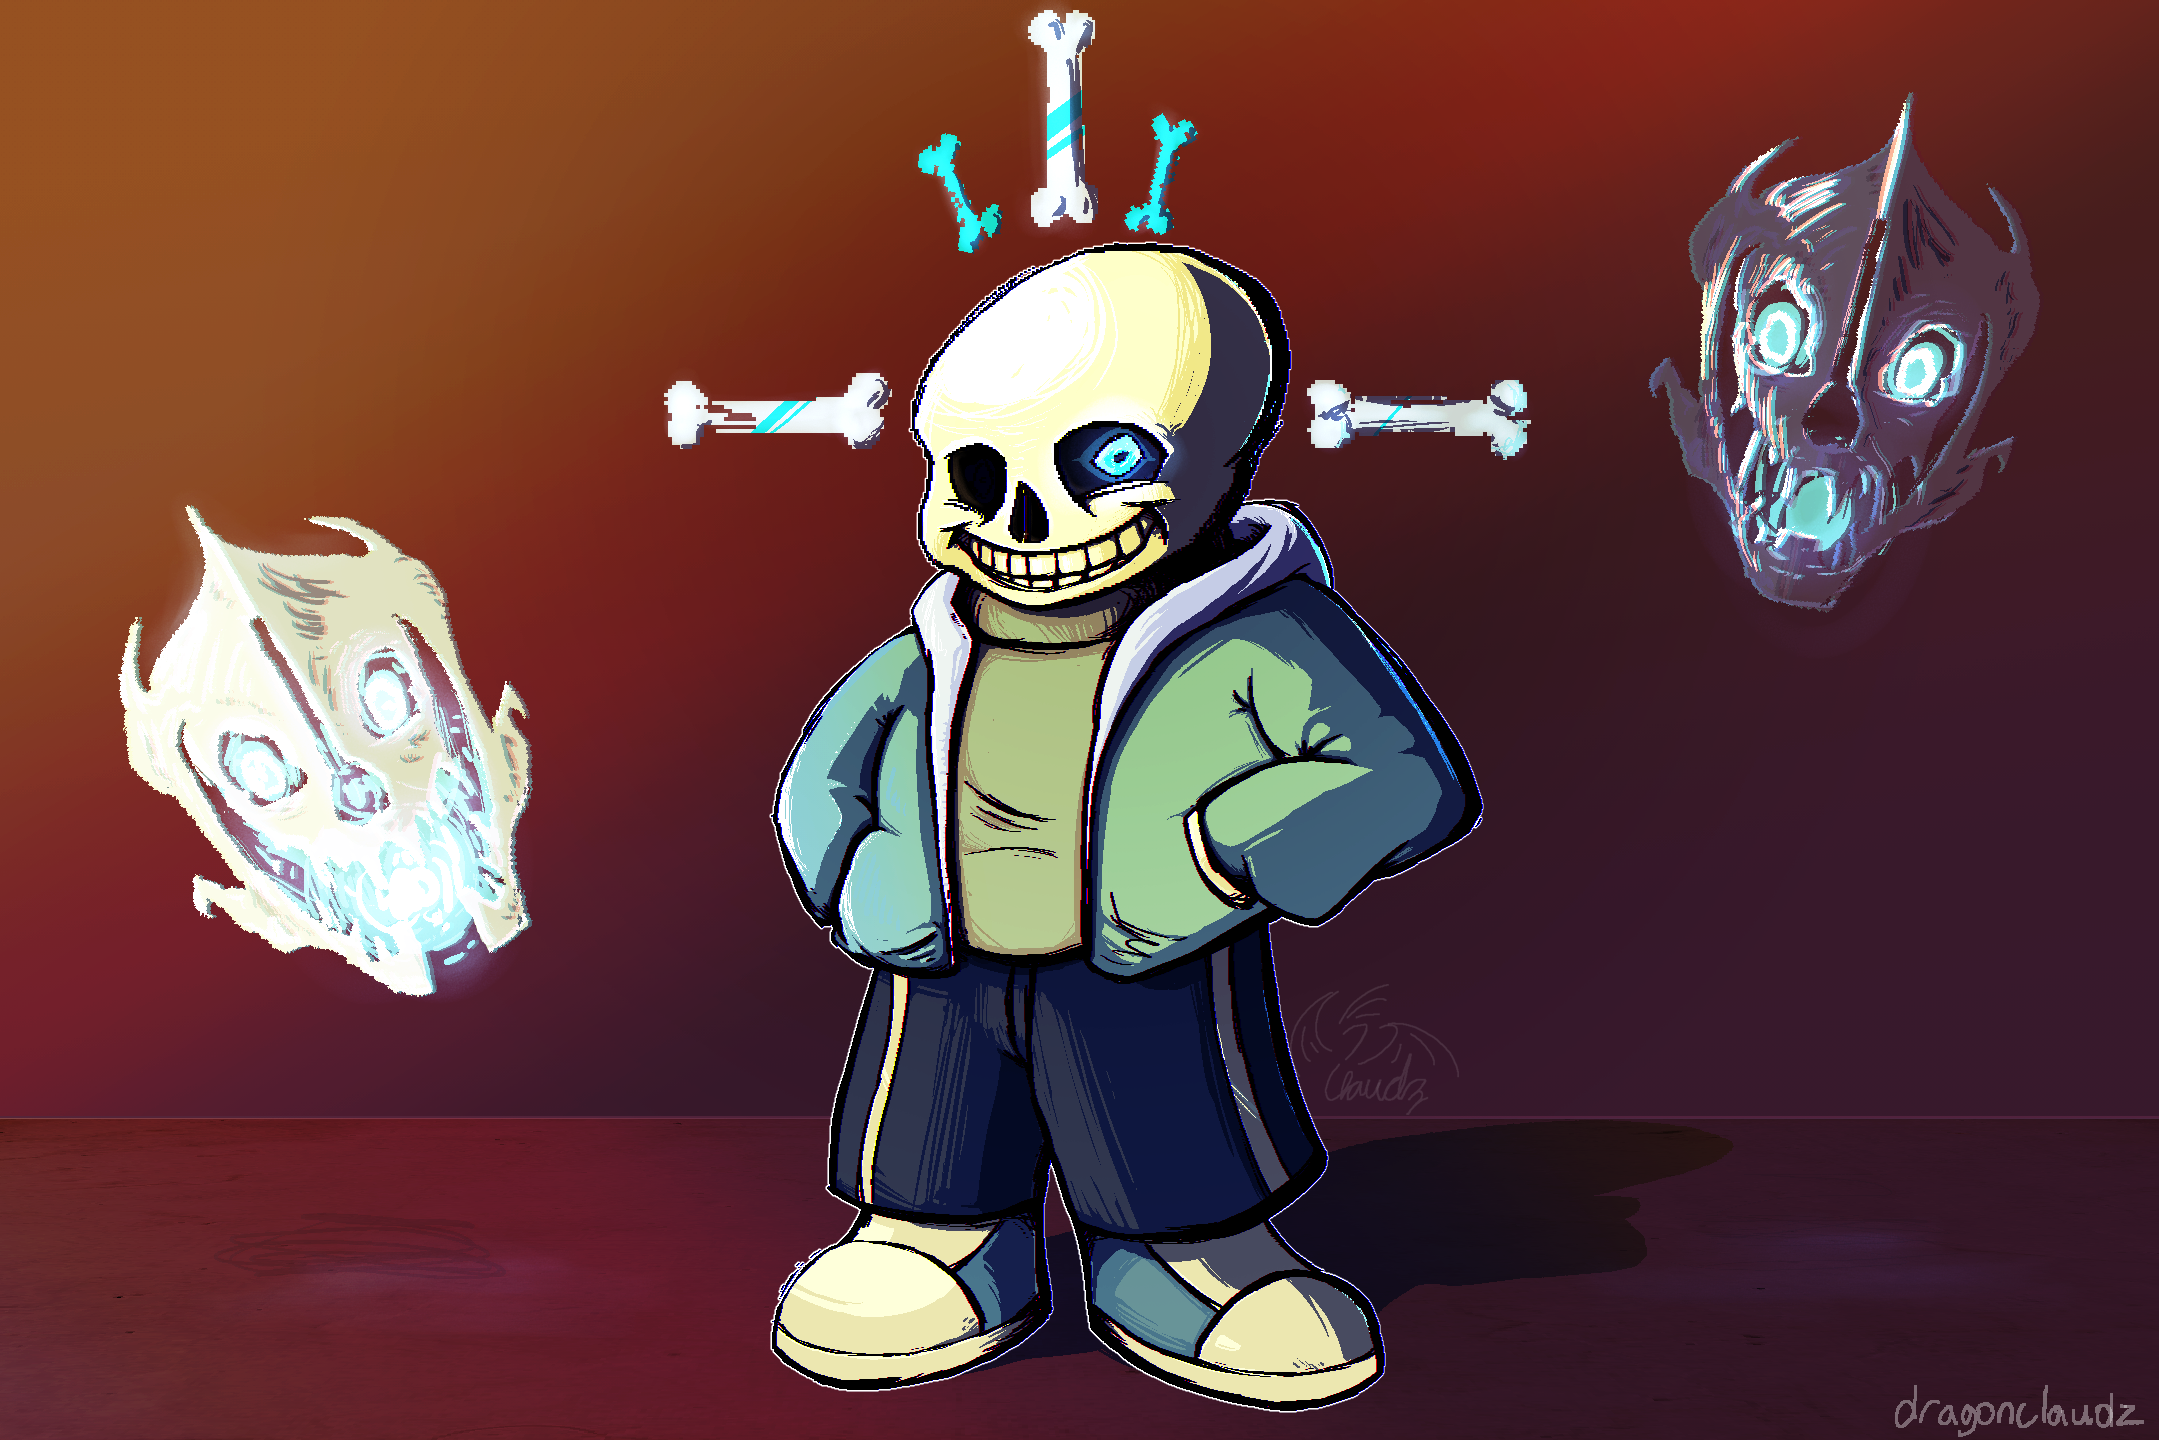 Sans Wallpaper   Undertale Fans Wallpaper 39012641 2159x1440